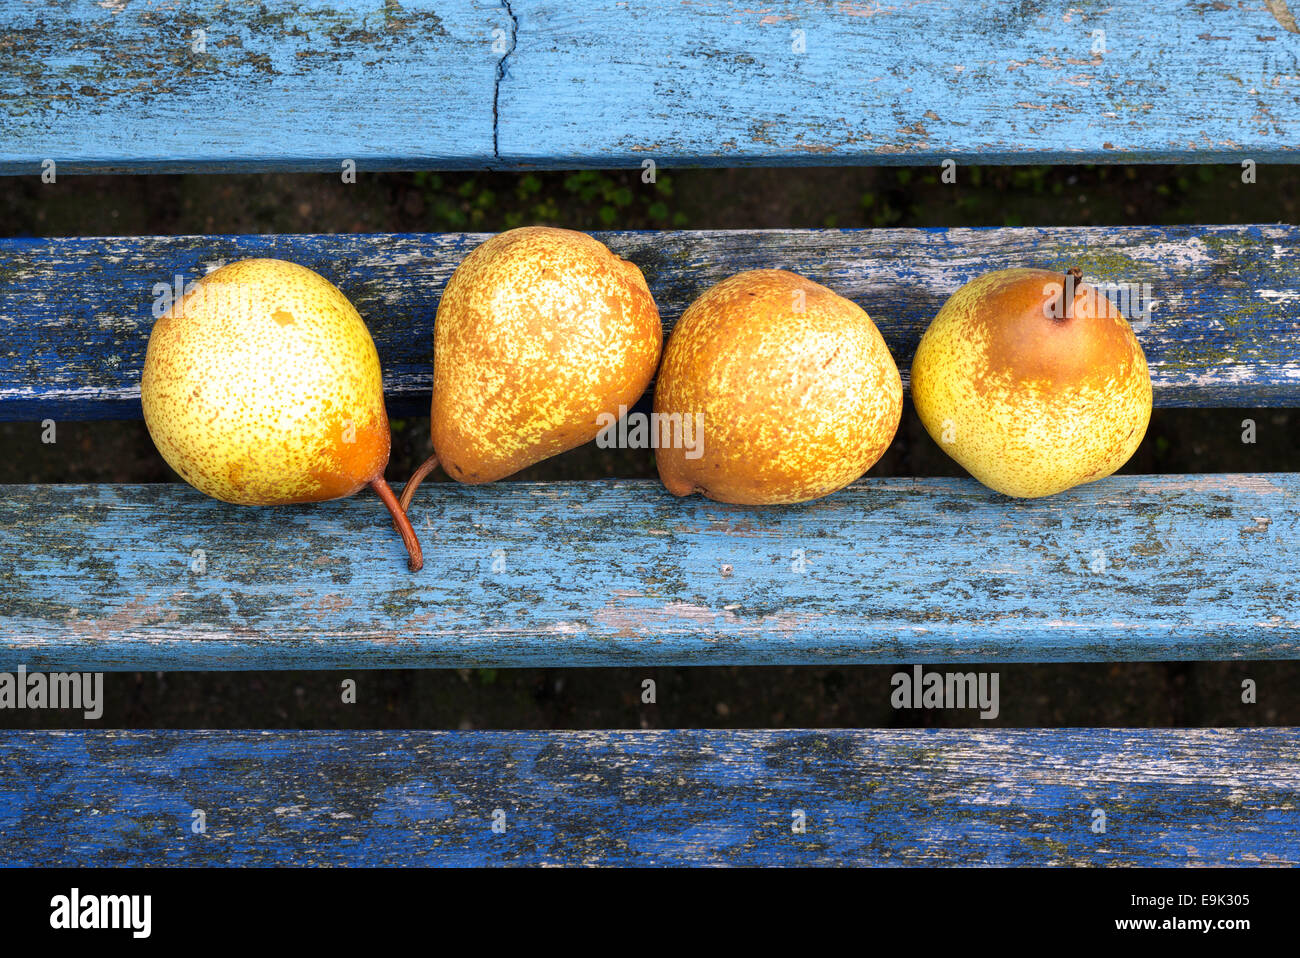 Four ripe pears in a line siting on a bench waiting to be eaten. Stock Photo